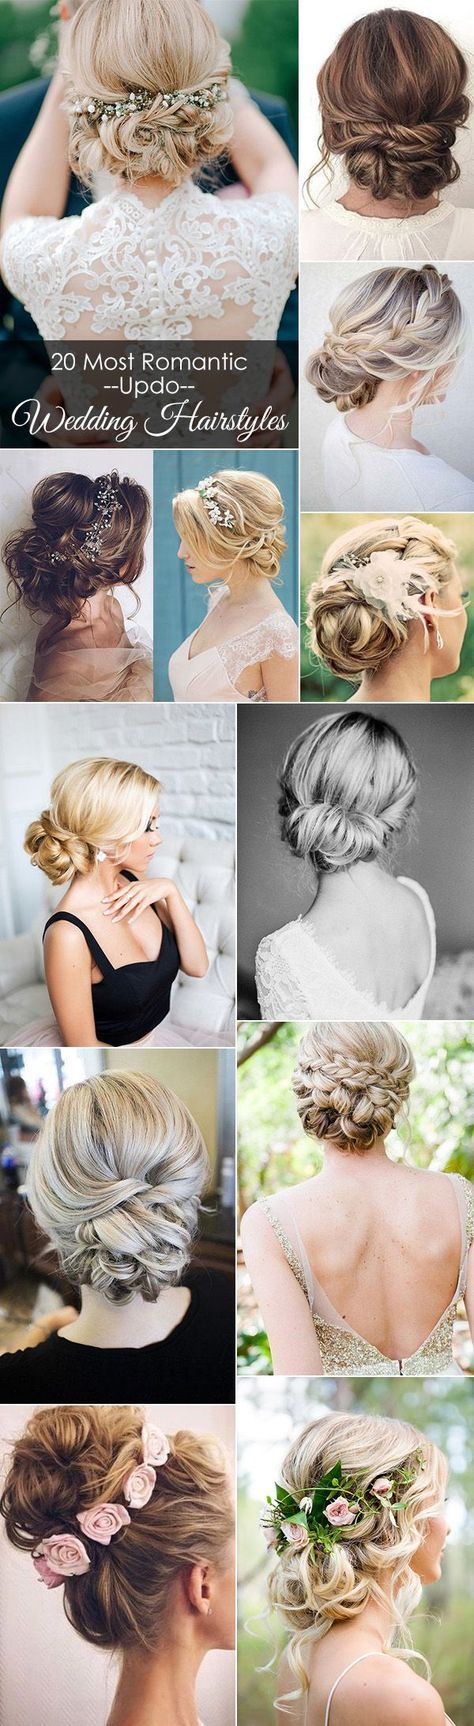 Best doggpound wedding images on pinterest bridal hairstyles